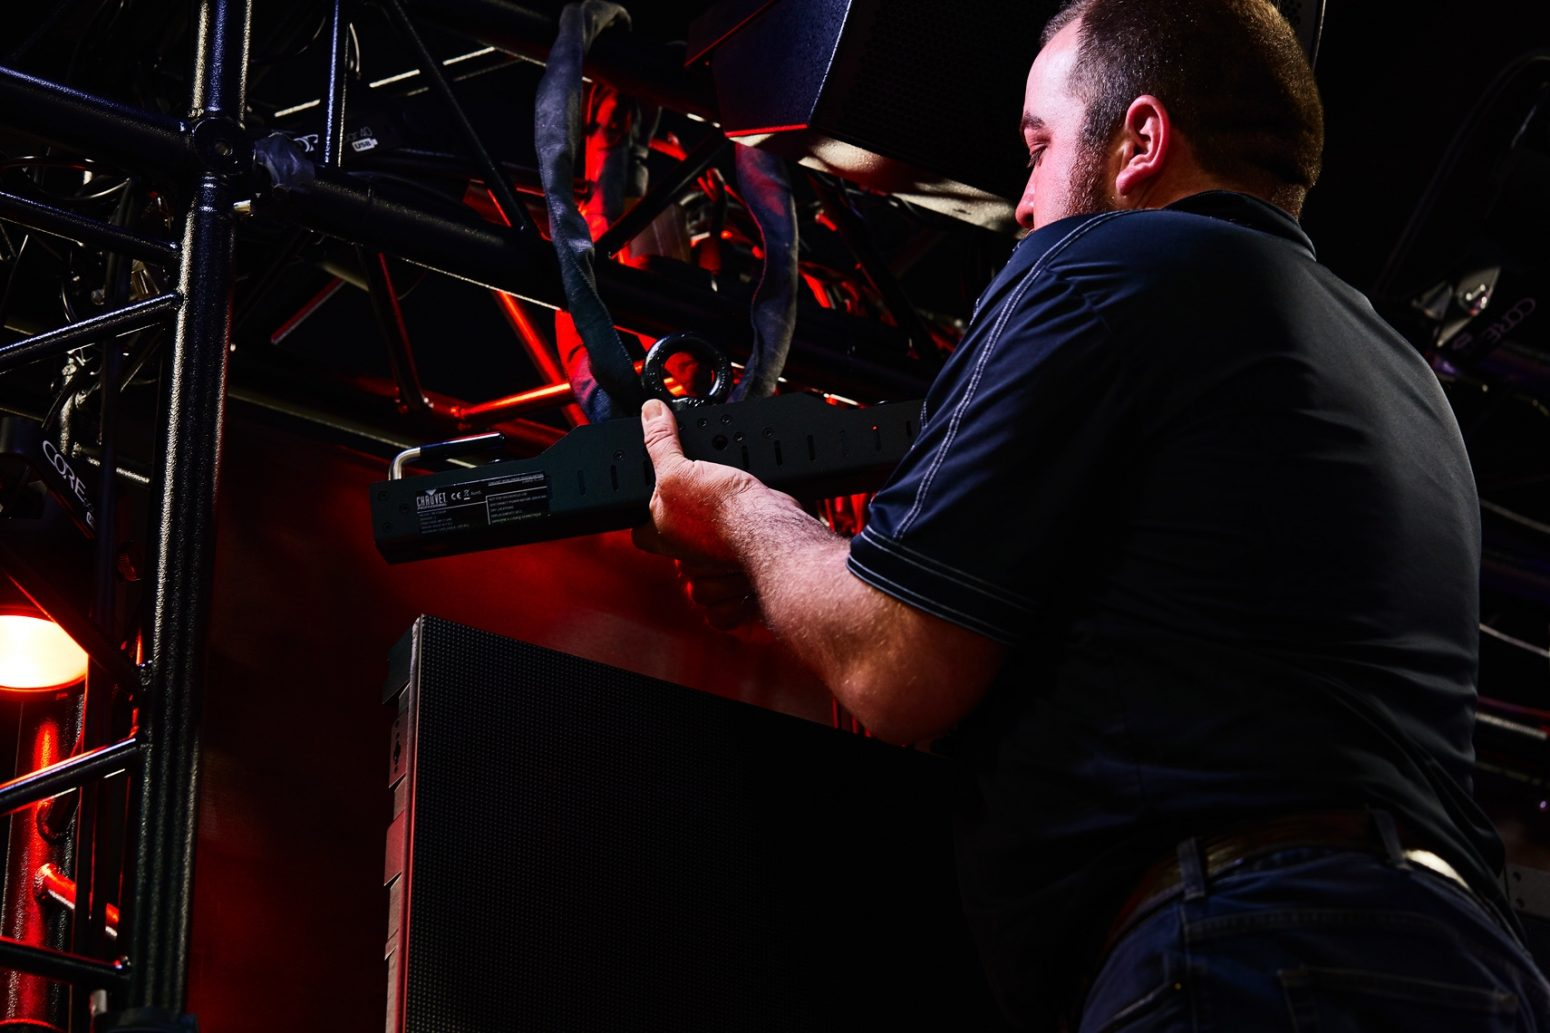 When it comes to entertainment rigging that's safe and strong, you need Paragon 360.